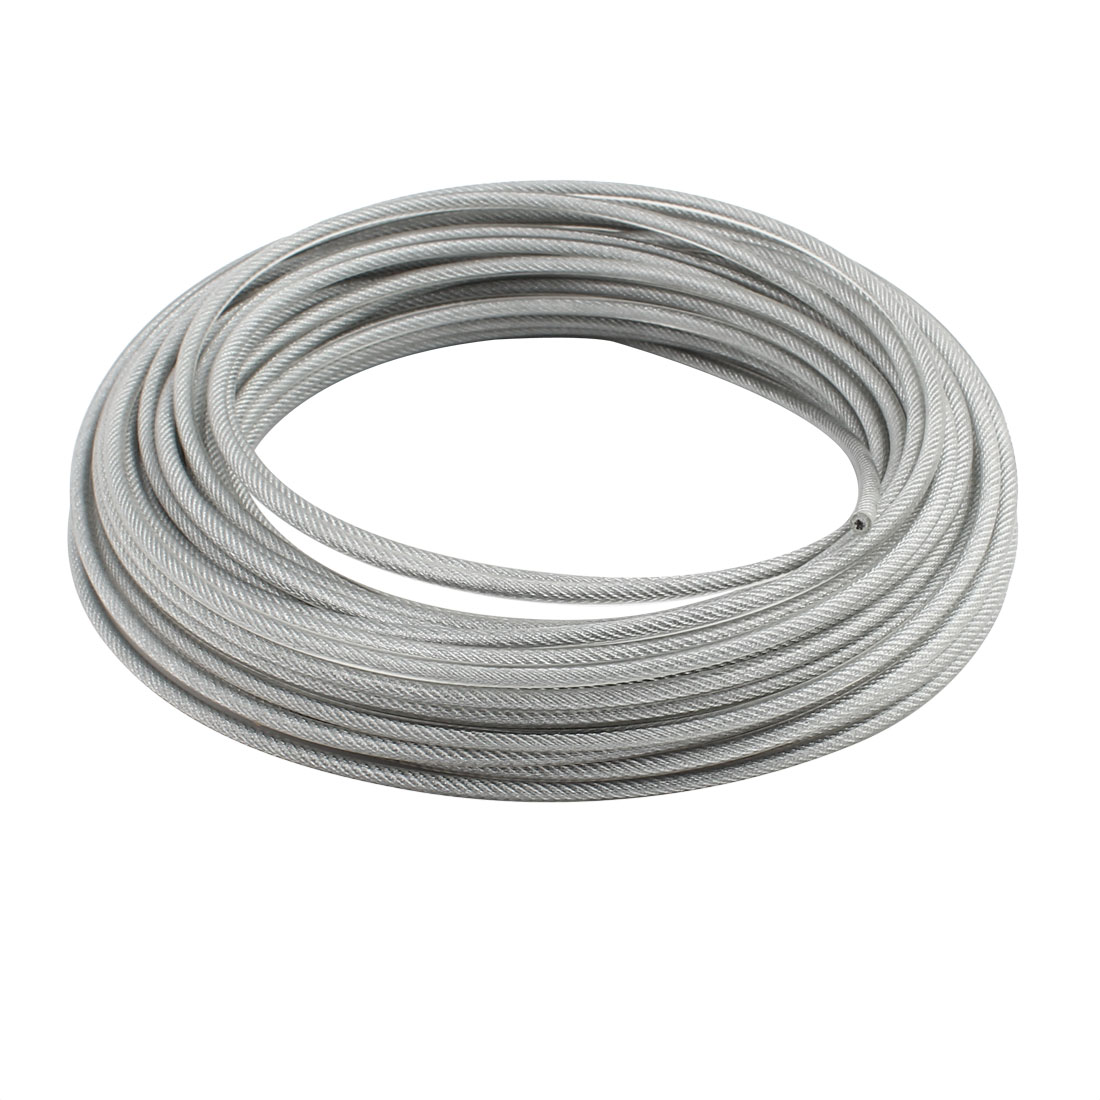 4mm Diameter Vinyl Coated Wire Rope Aircraft Cable 20 Meters Length ...